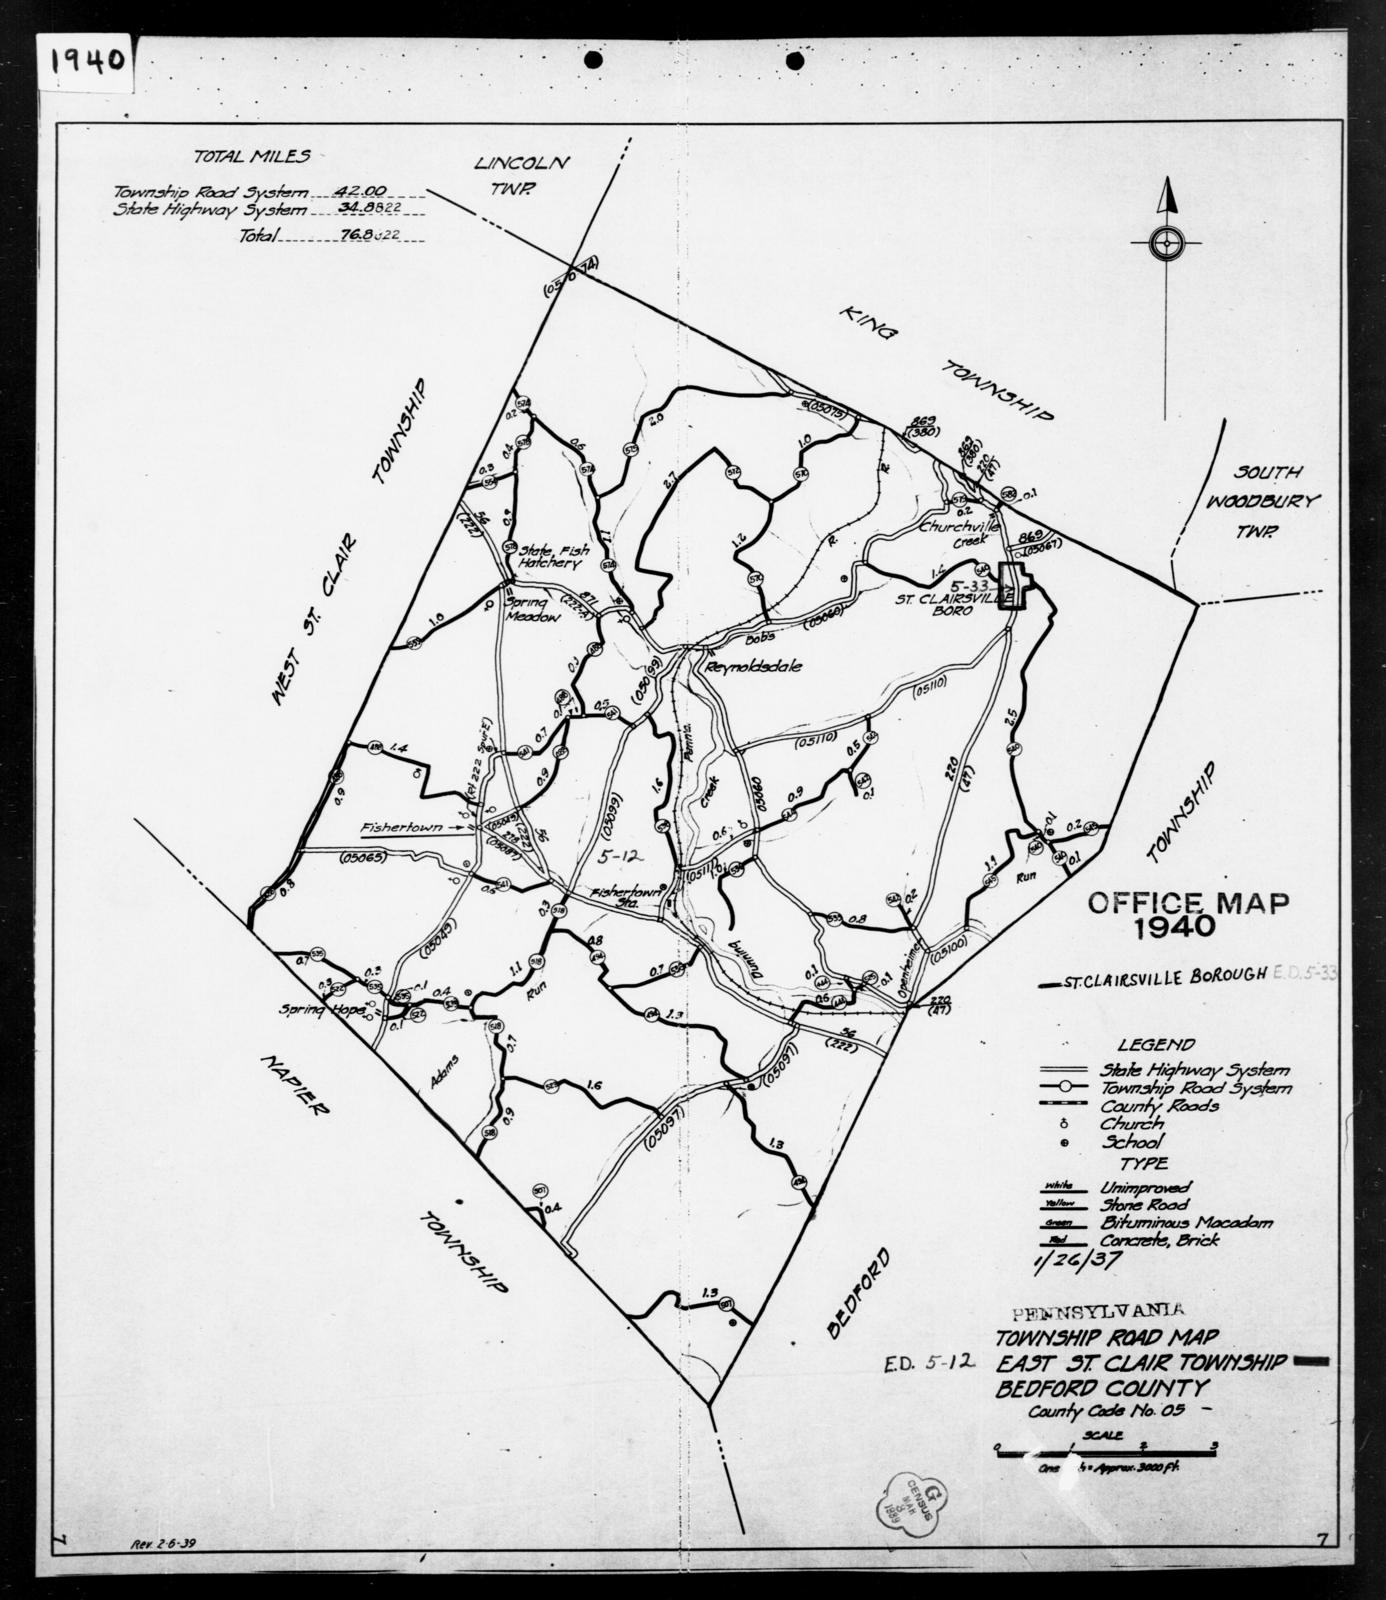 1940 Census Enumeration District Maps - Pennsylvania ... on al map, nys map, wv map, mi map, philadelphia map, ca map, ga map, delaware map, ar map, md map, ky map, fla map, de map, pennsylvania map, ohio map, oh map, state map, az map, usa map,